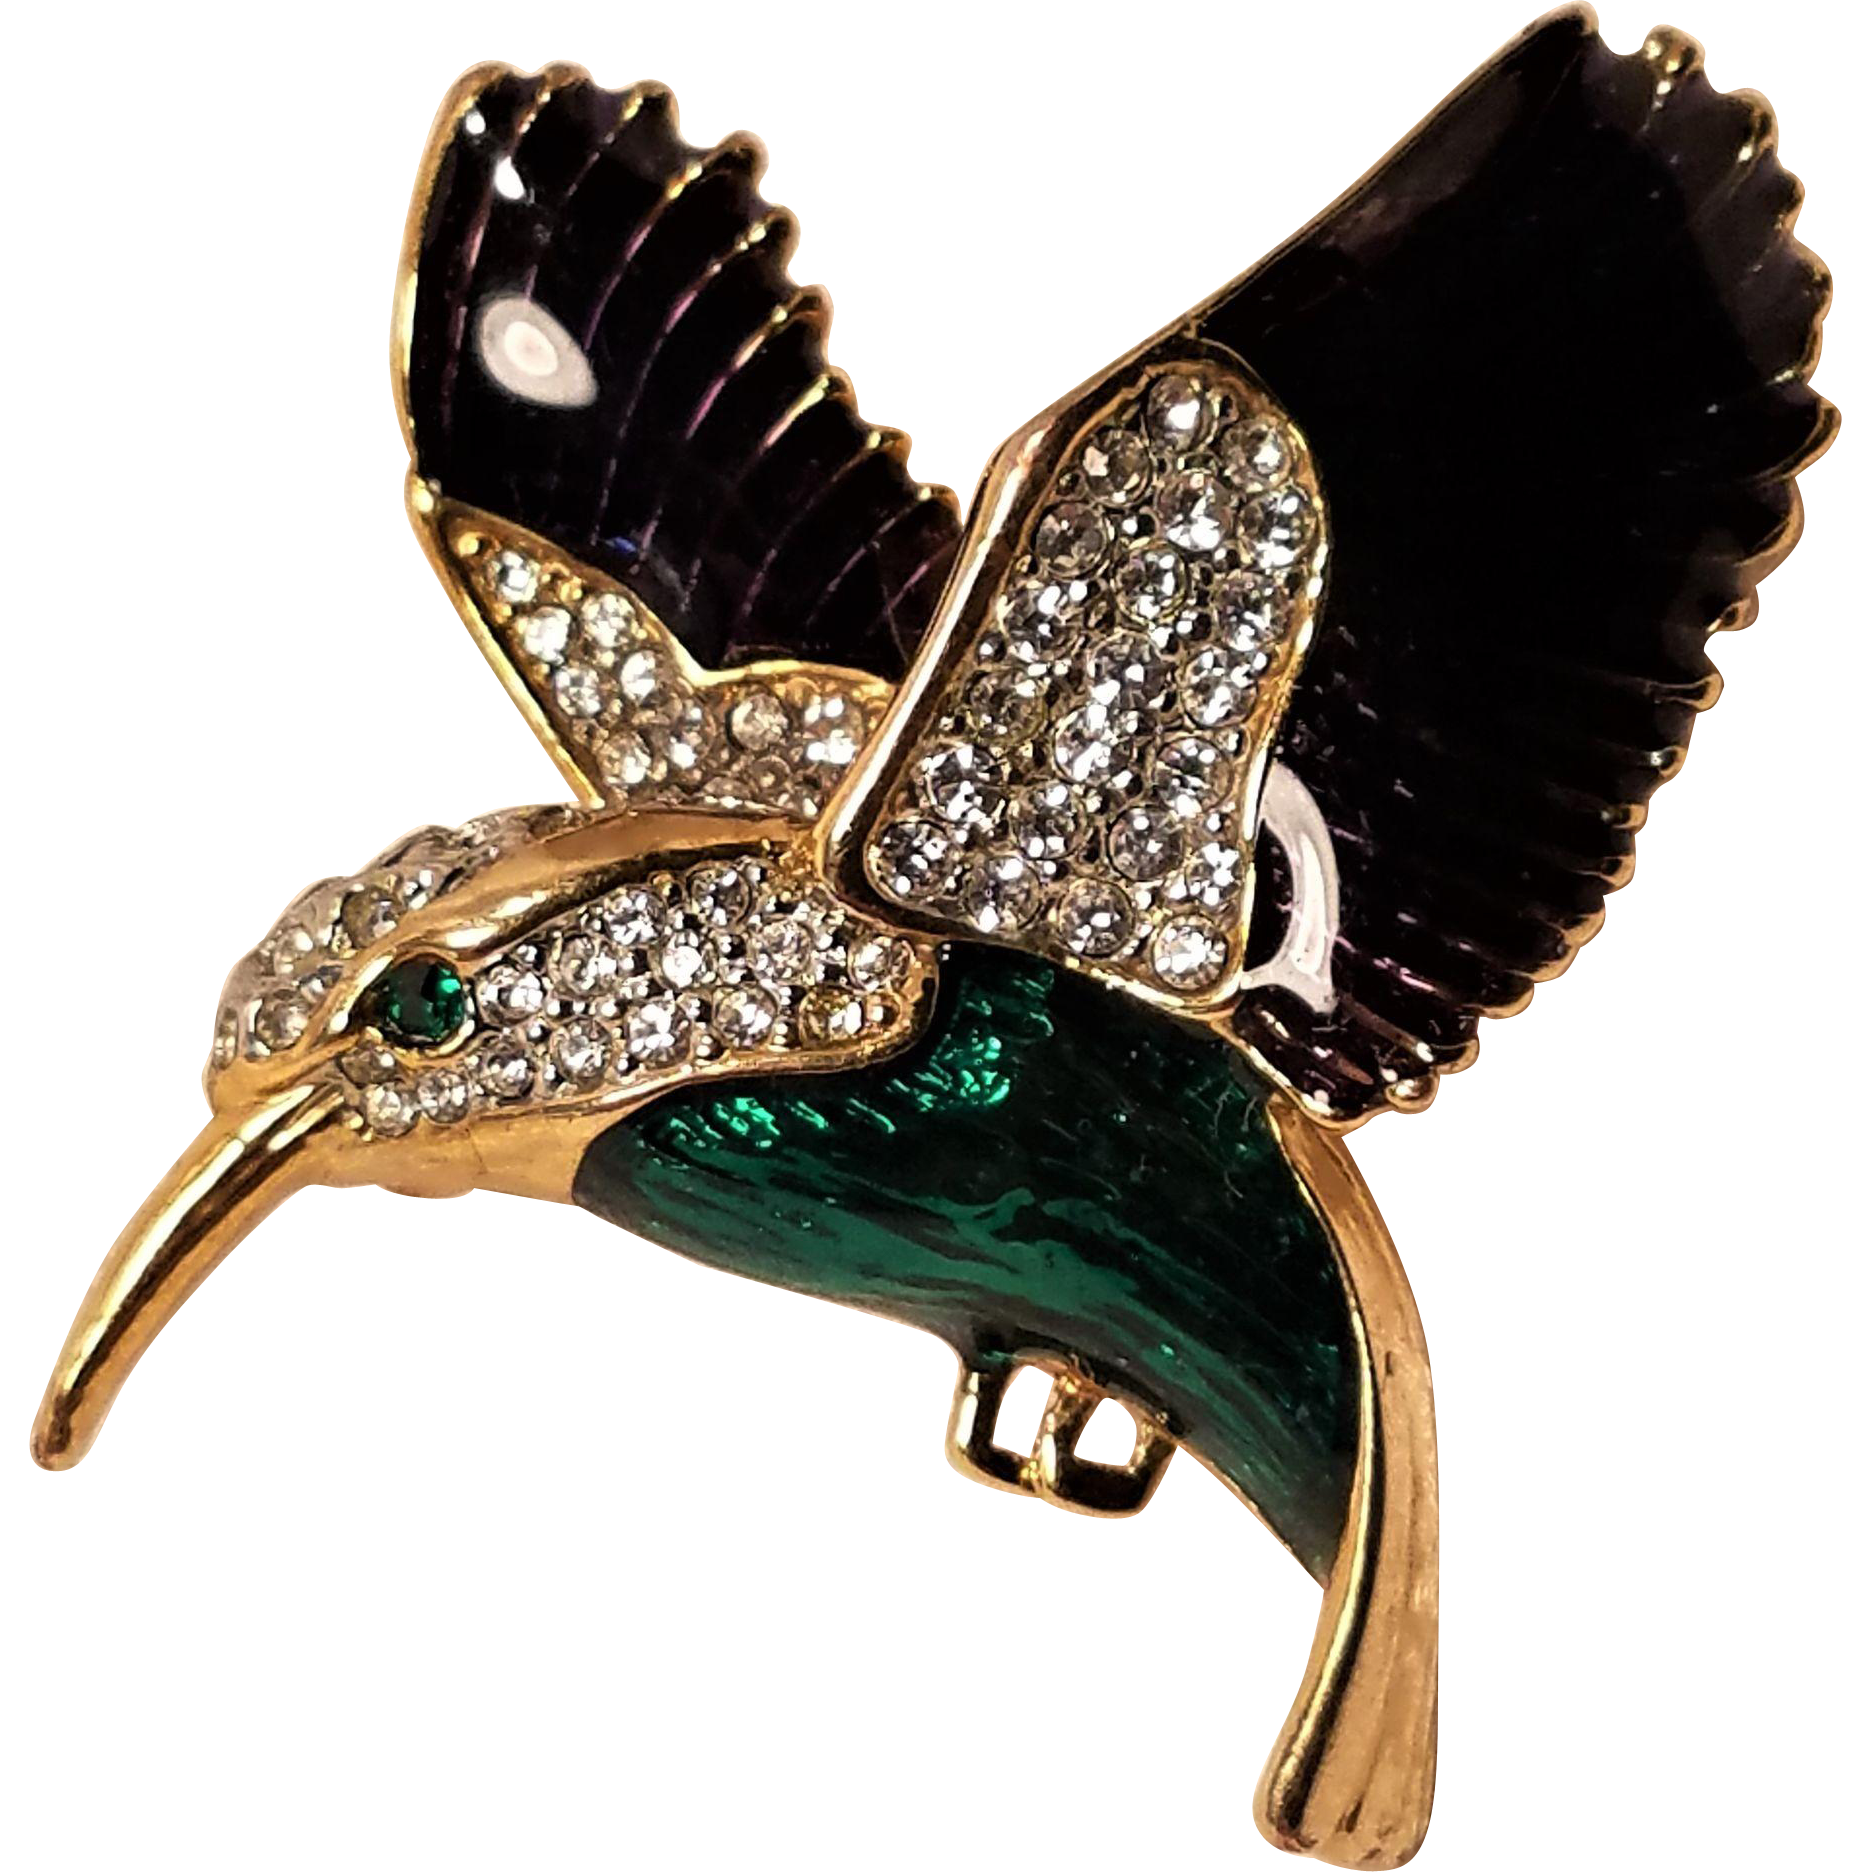 Vintage Humming Bird Pin Enameled Wings and Chest with Pave Rhinestones